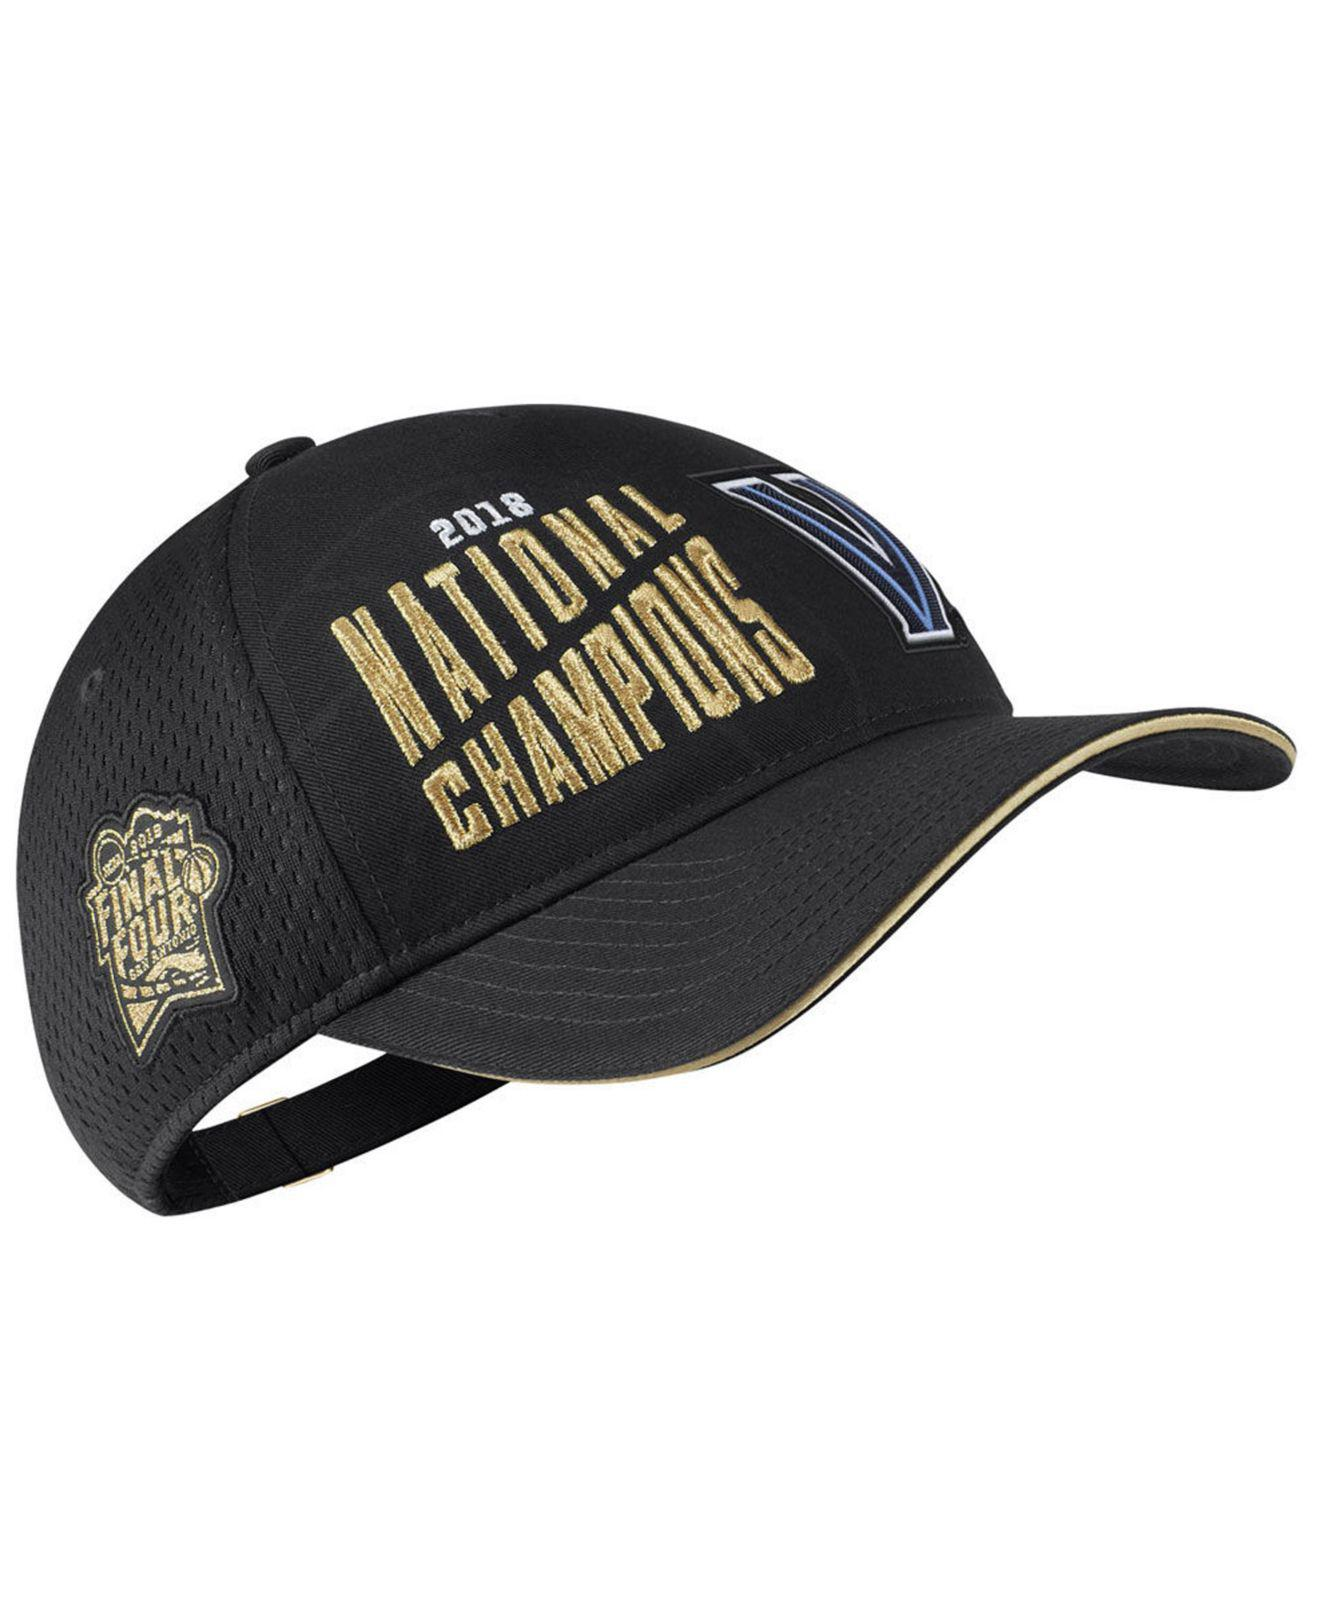 ... reduced lyst nike villanova wildcats basketball national champs cap in  black for men save 53.125 45fa7 41a197840265